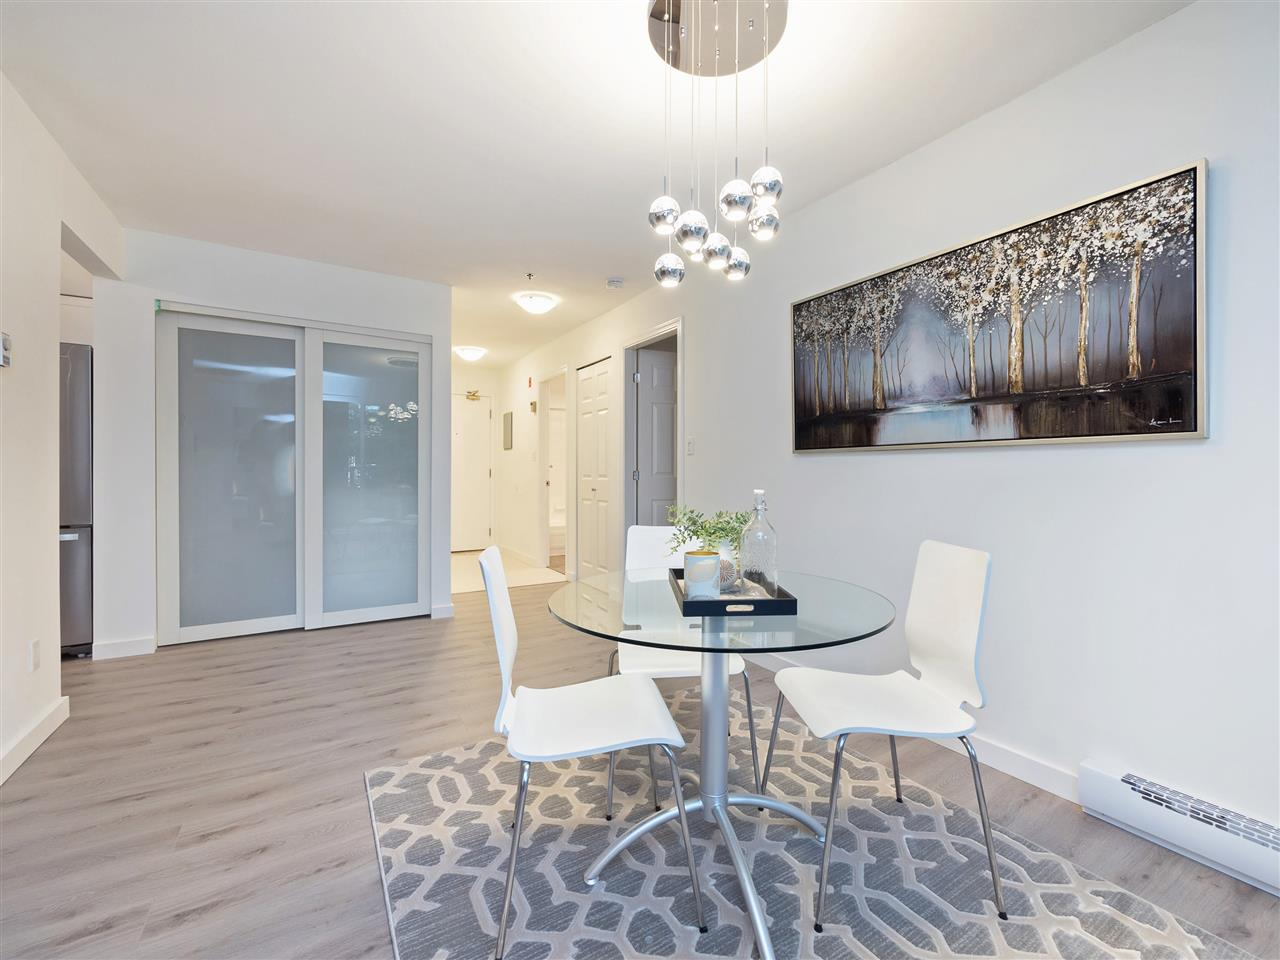 Condo Apartment at 211 1148 WESTWOOD STREET, Unit 211, Coquitlam, British Columbia. Image 4